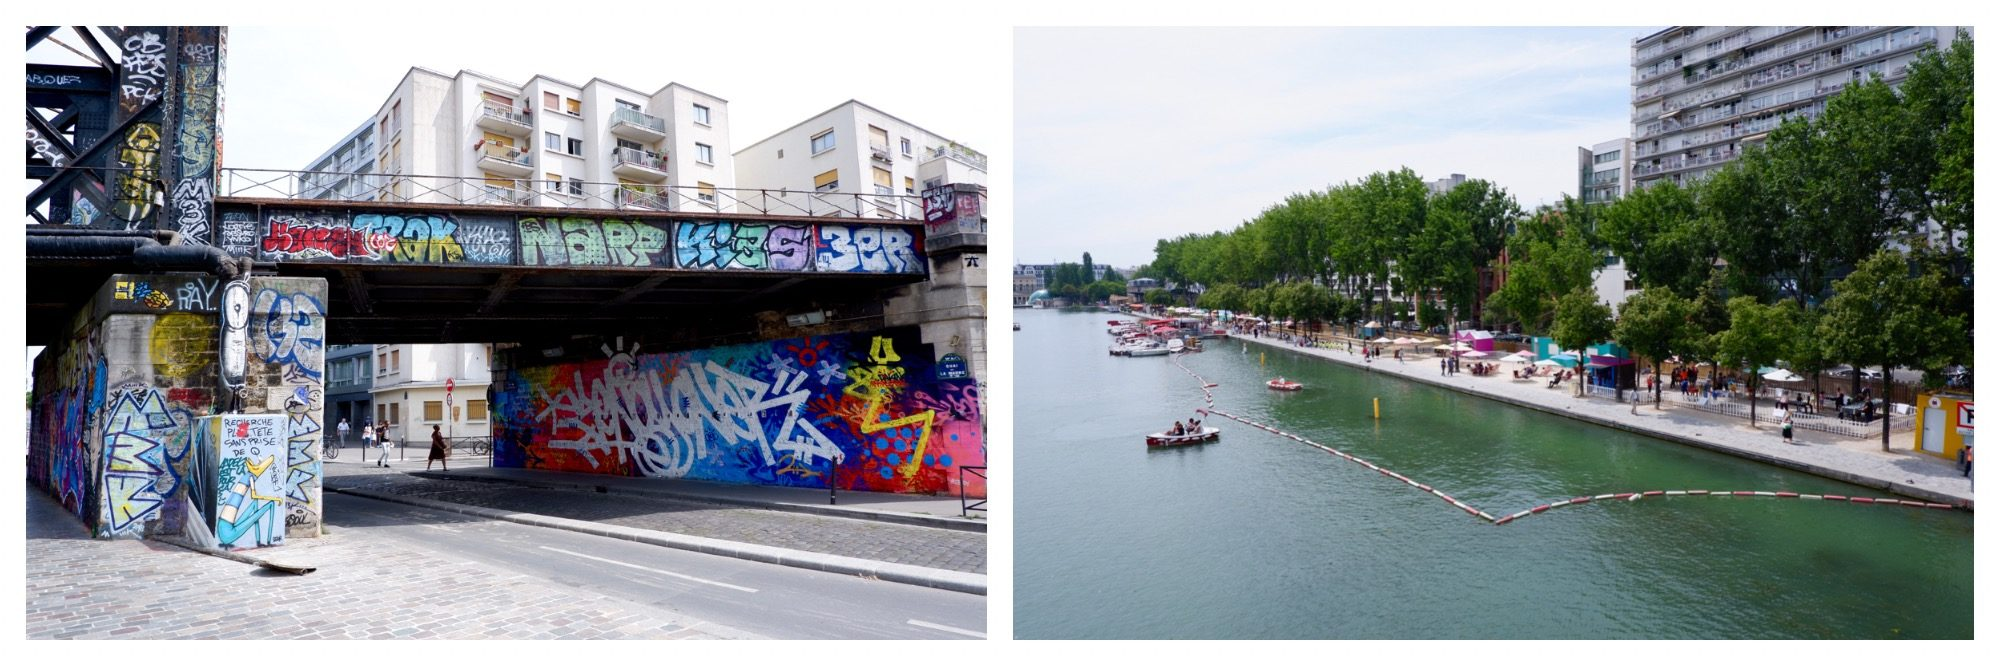 The colorful graffiti along the canals up in the 19th arrondissement of Paris along the canal (left) and the canal lined by a makeshift beach (right).